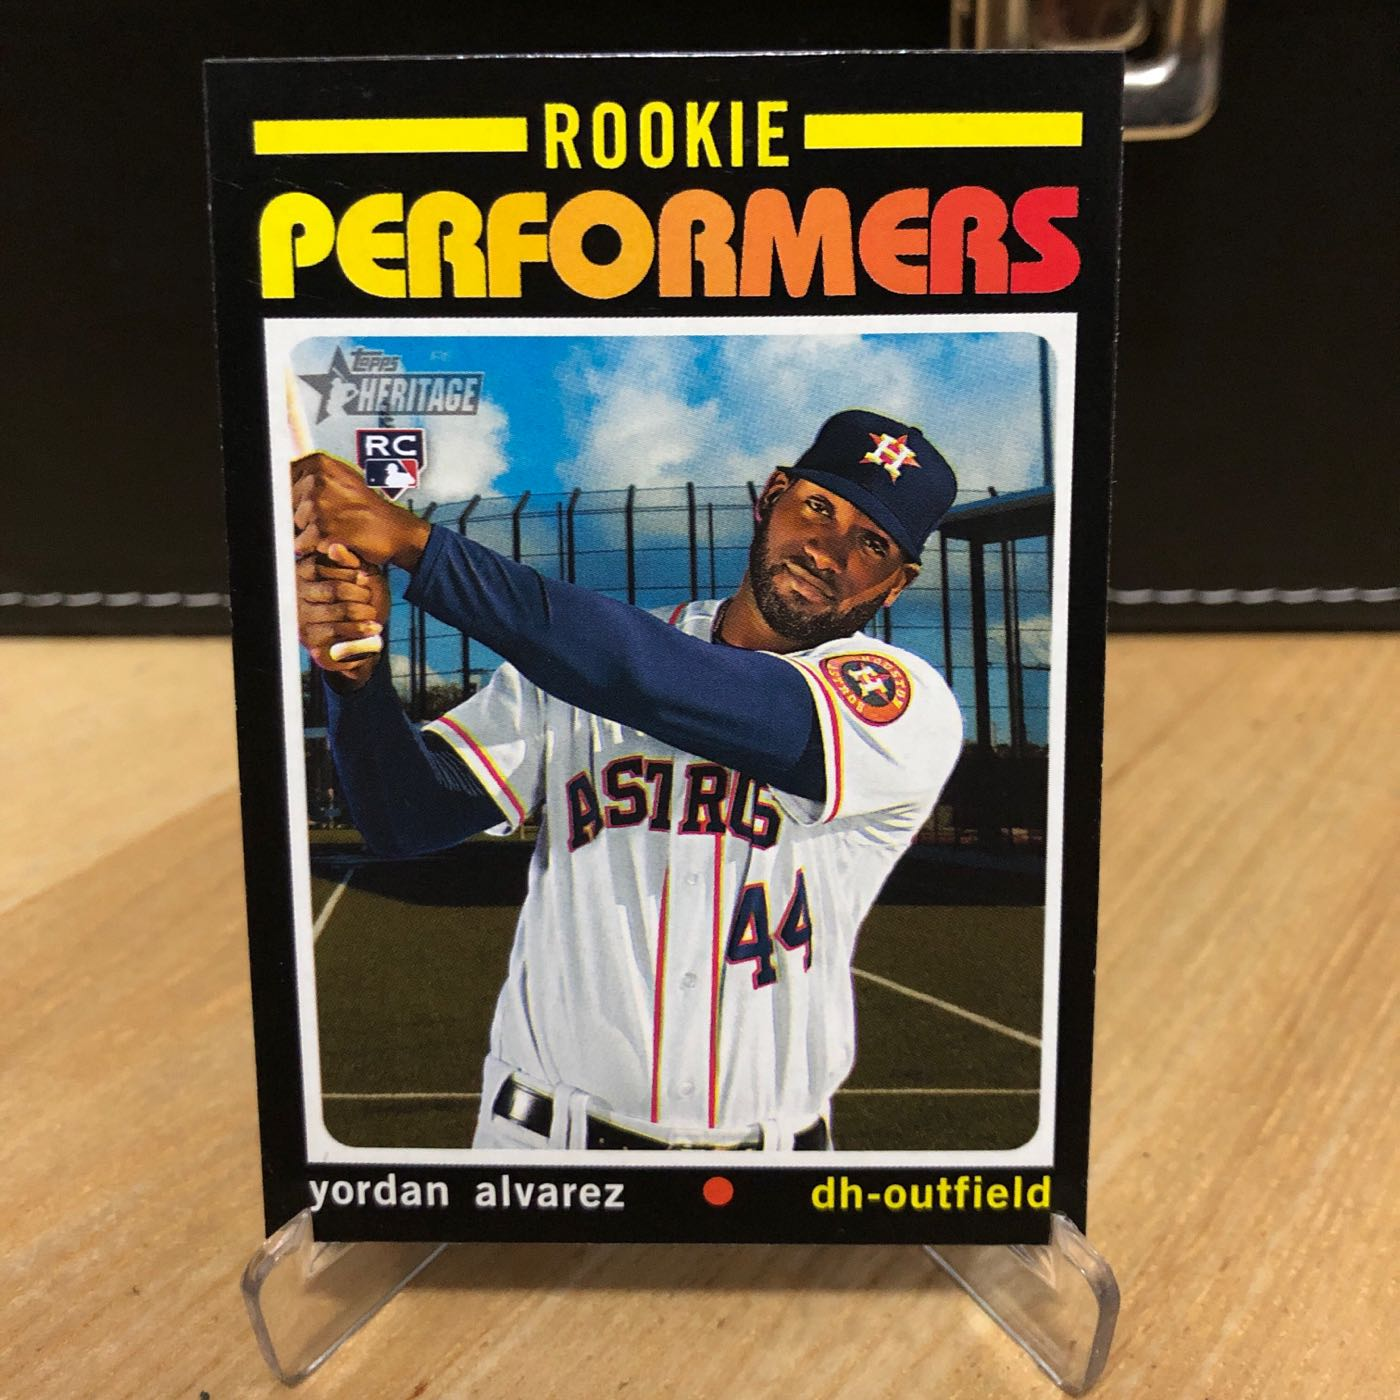 太空人新人 2020 Topps Heritage High Number Rookie Performers Yordan Alvarez - Houston